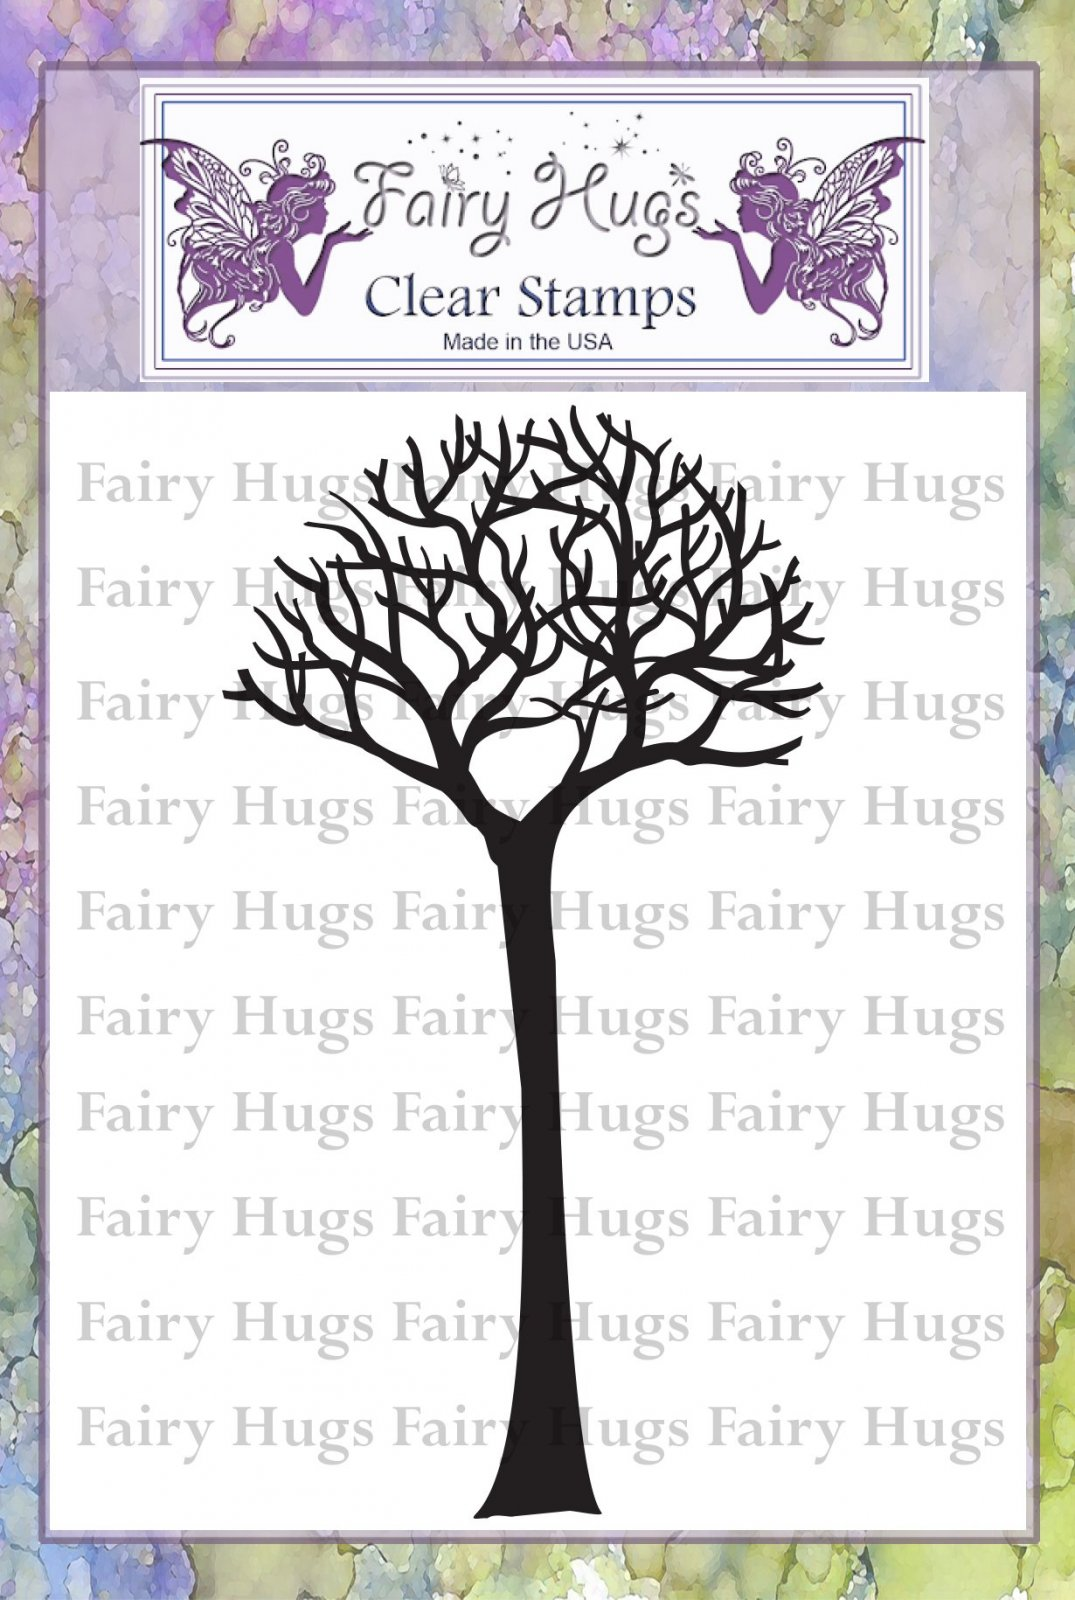 PRE ORDER Fairy Hugs Stamps - Skinny Bare Tree (Tall)